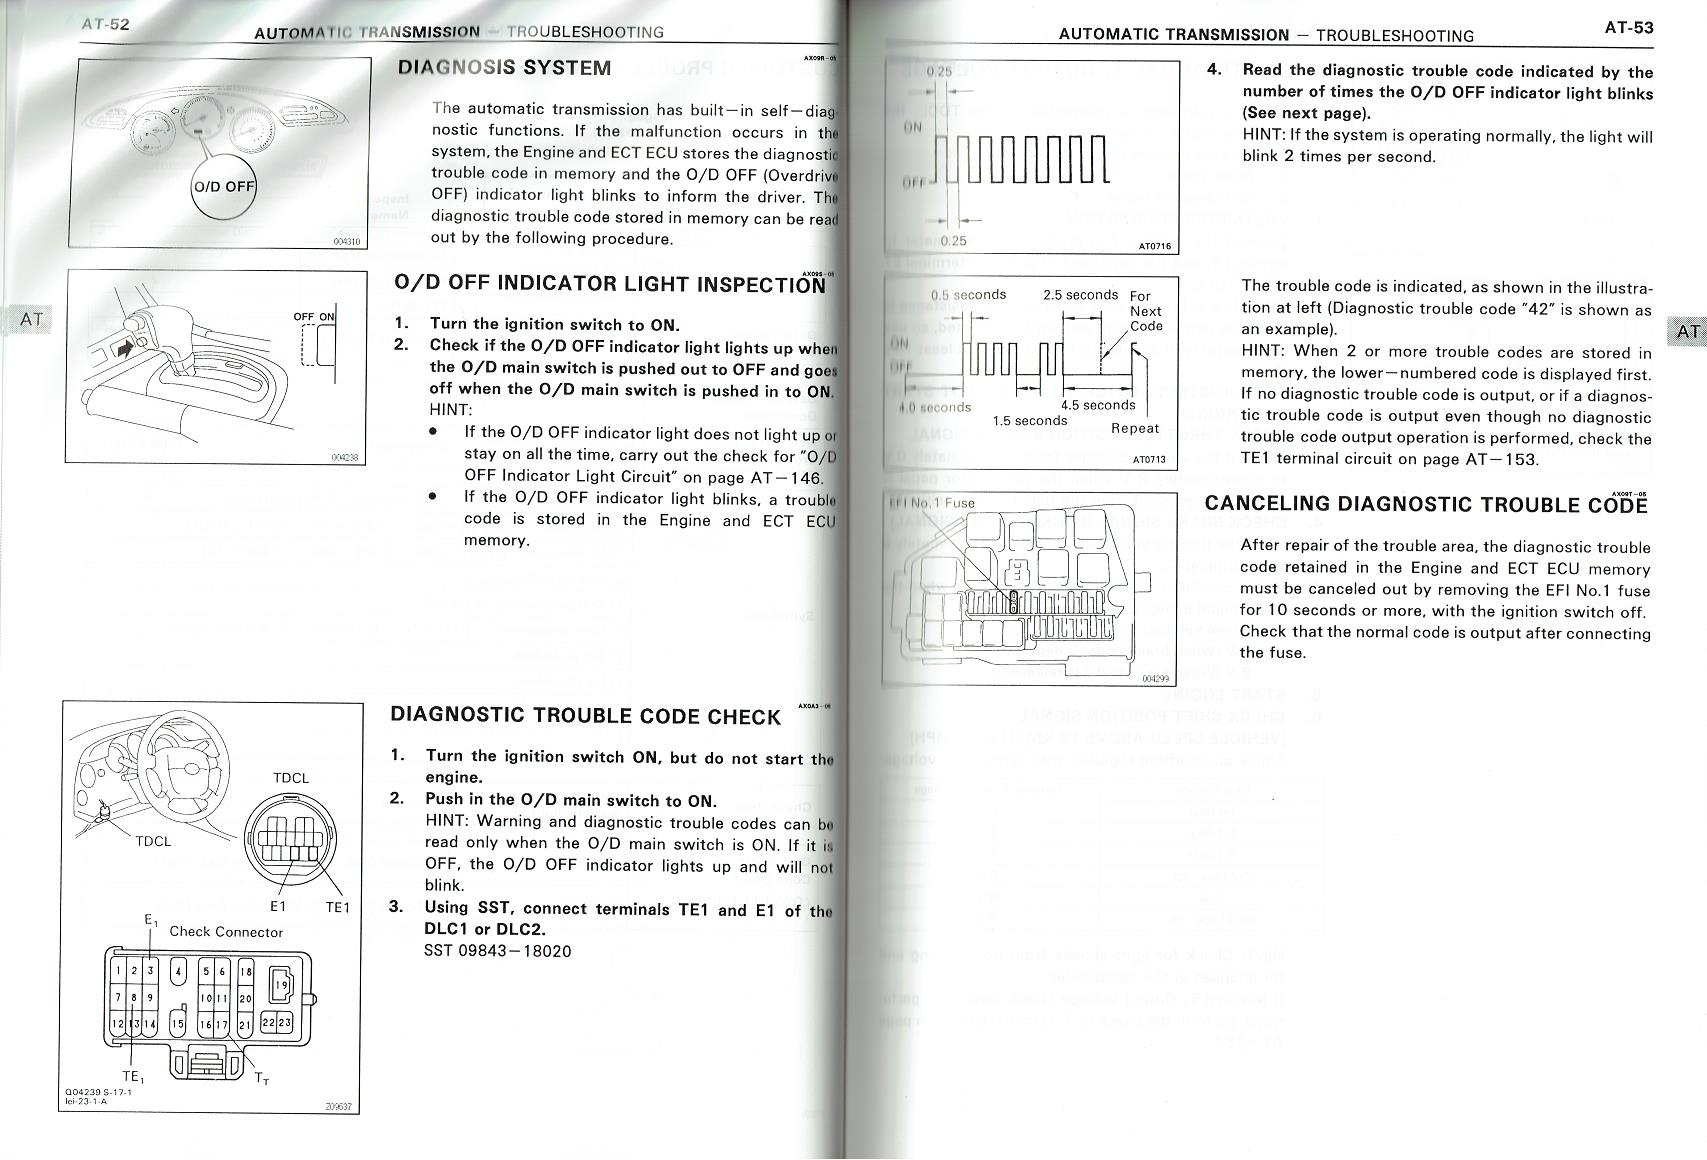 p52 53 toyota supra mkiv mkiv technical articles hks sld type 2 wiring diagram at reclaimingppi.co